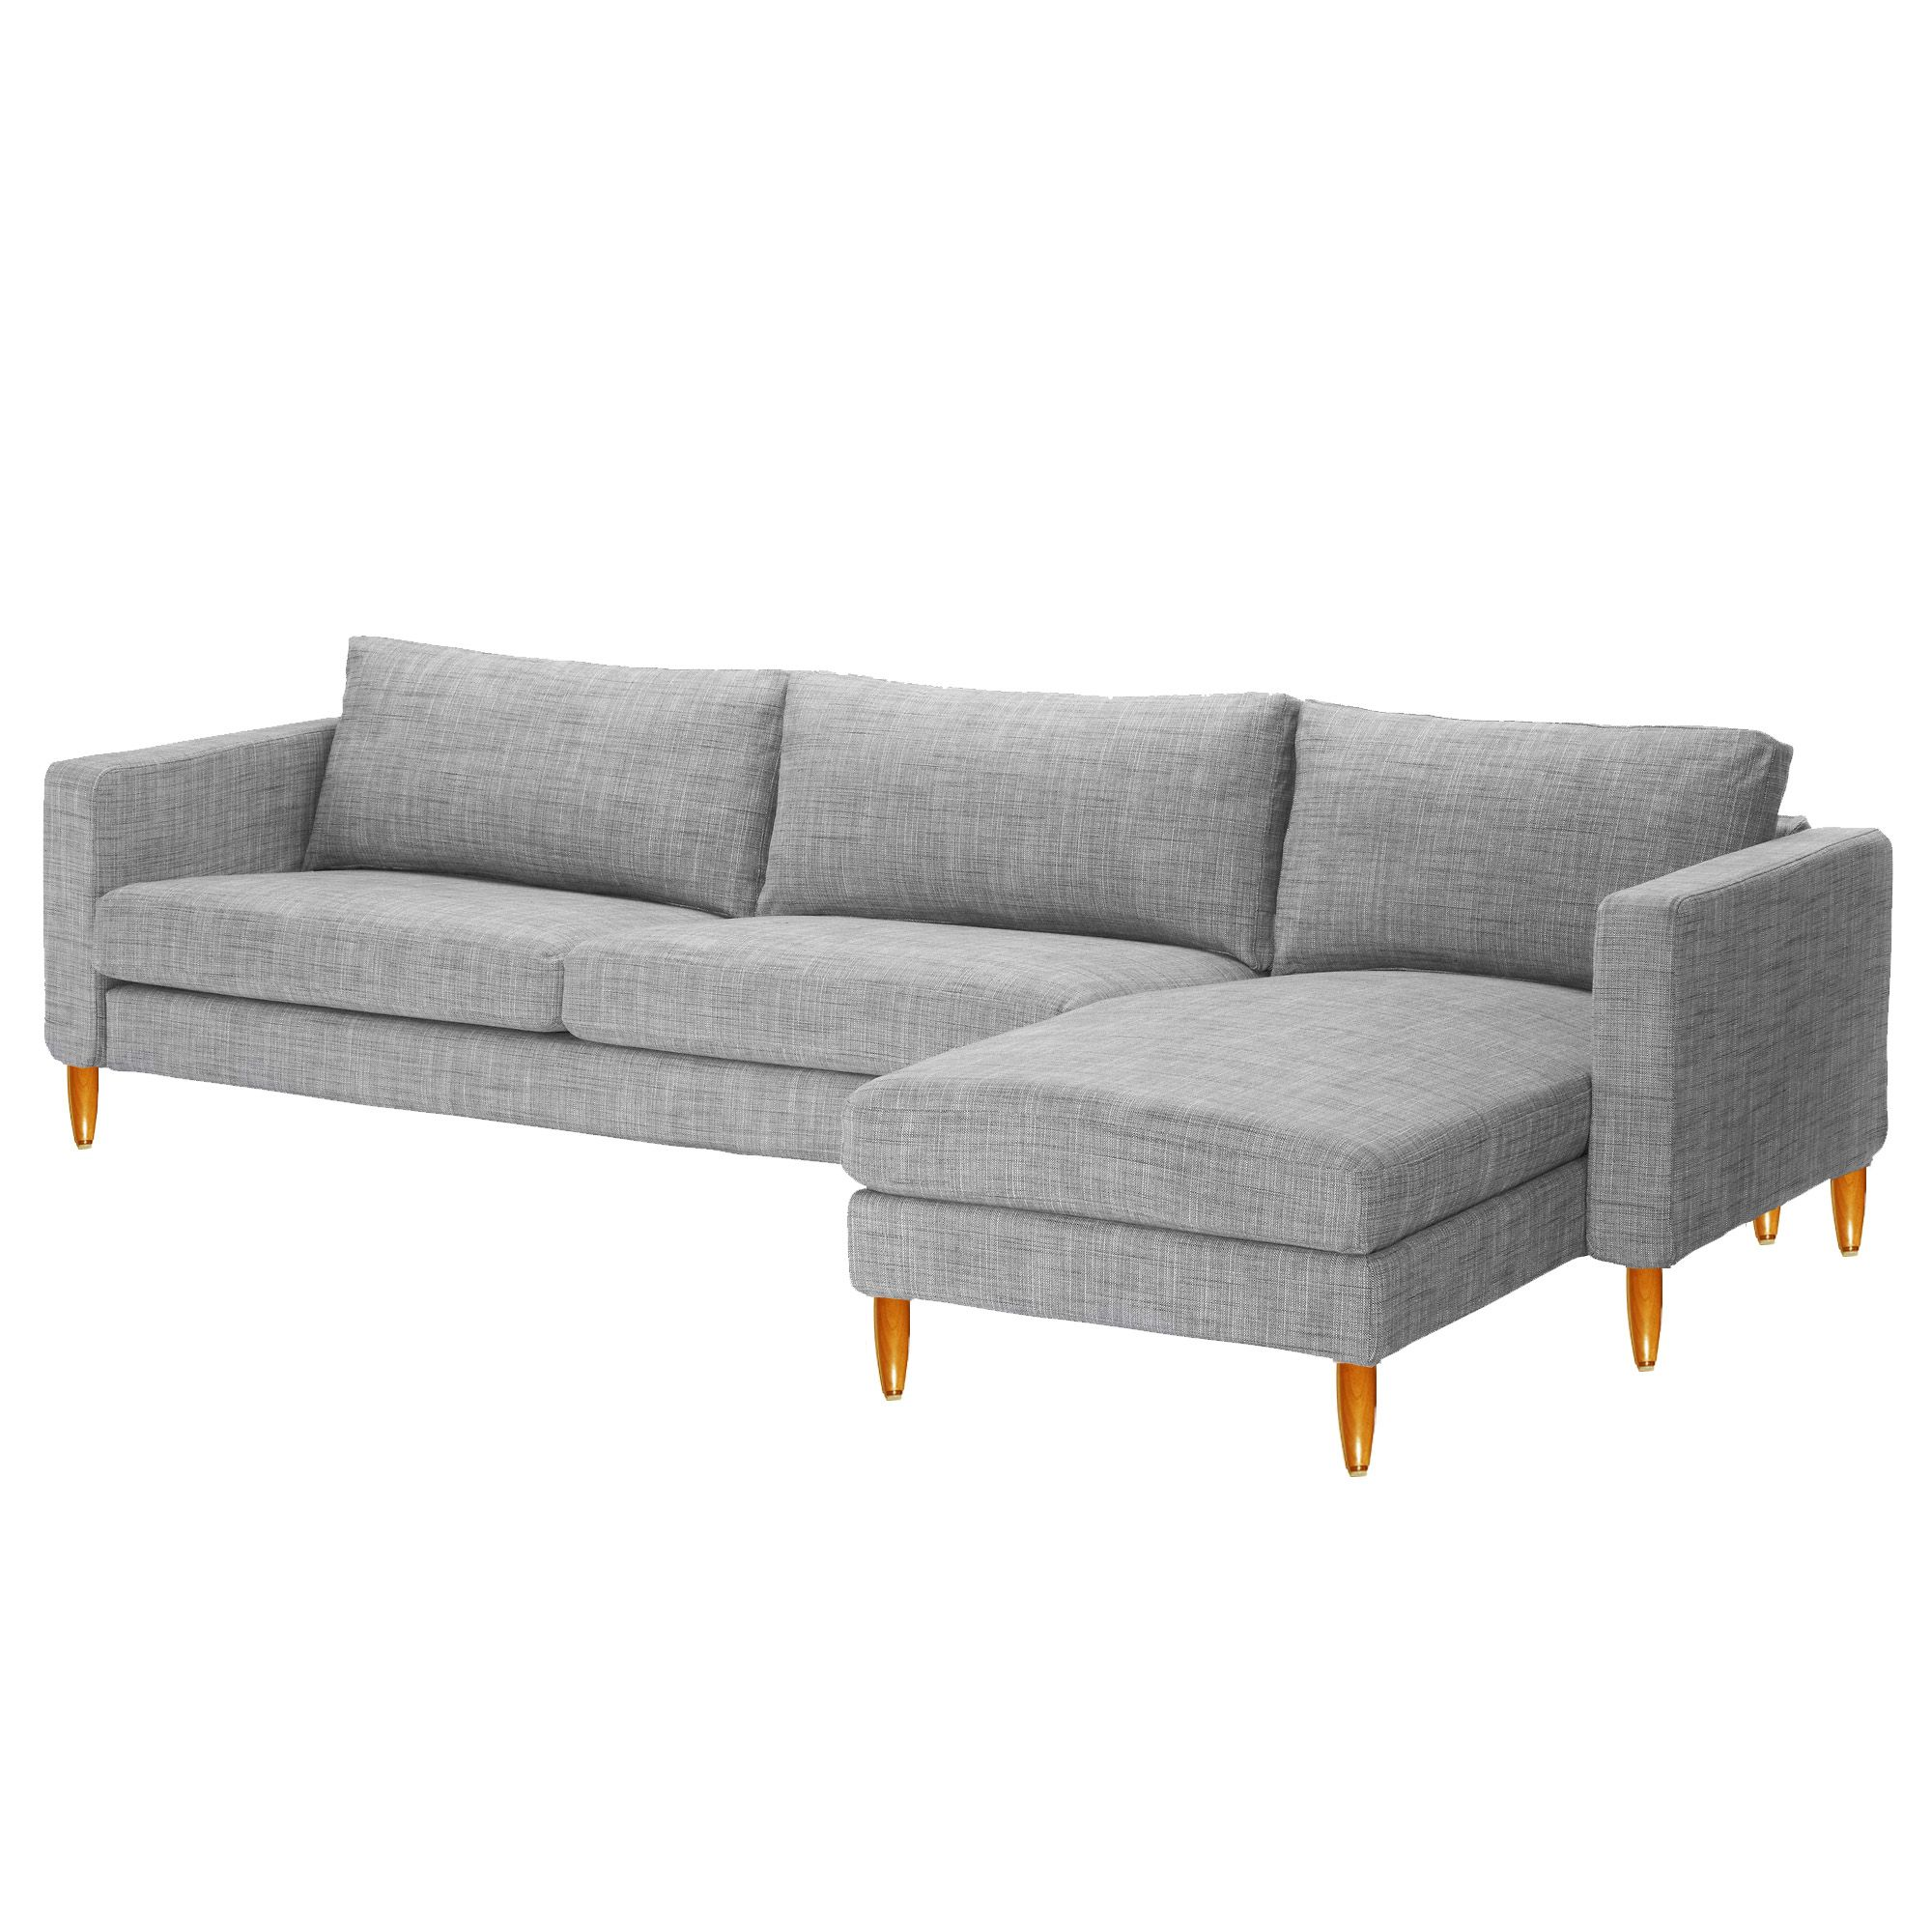 Sofa Ikea Chaise Ikea Karlstad Sofa Chaise With New Legs 610 Total Bought